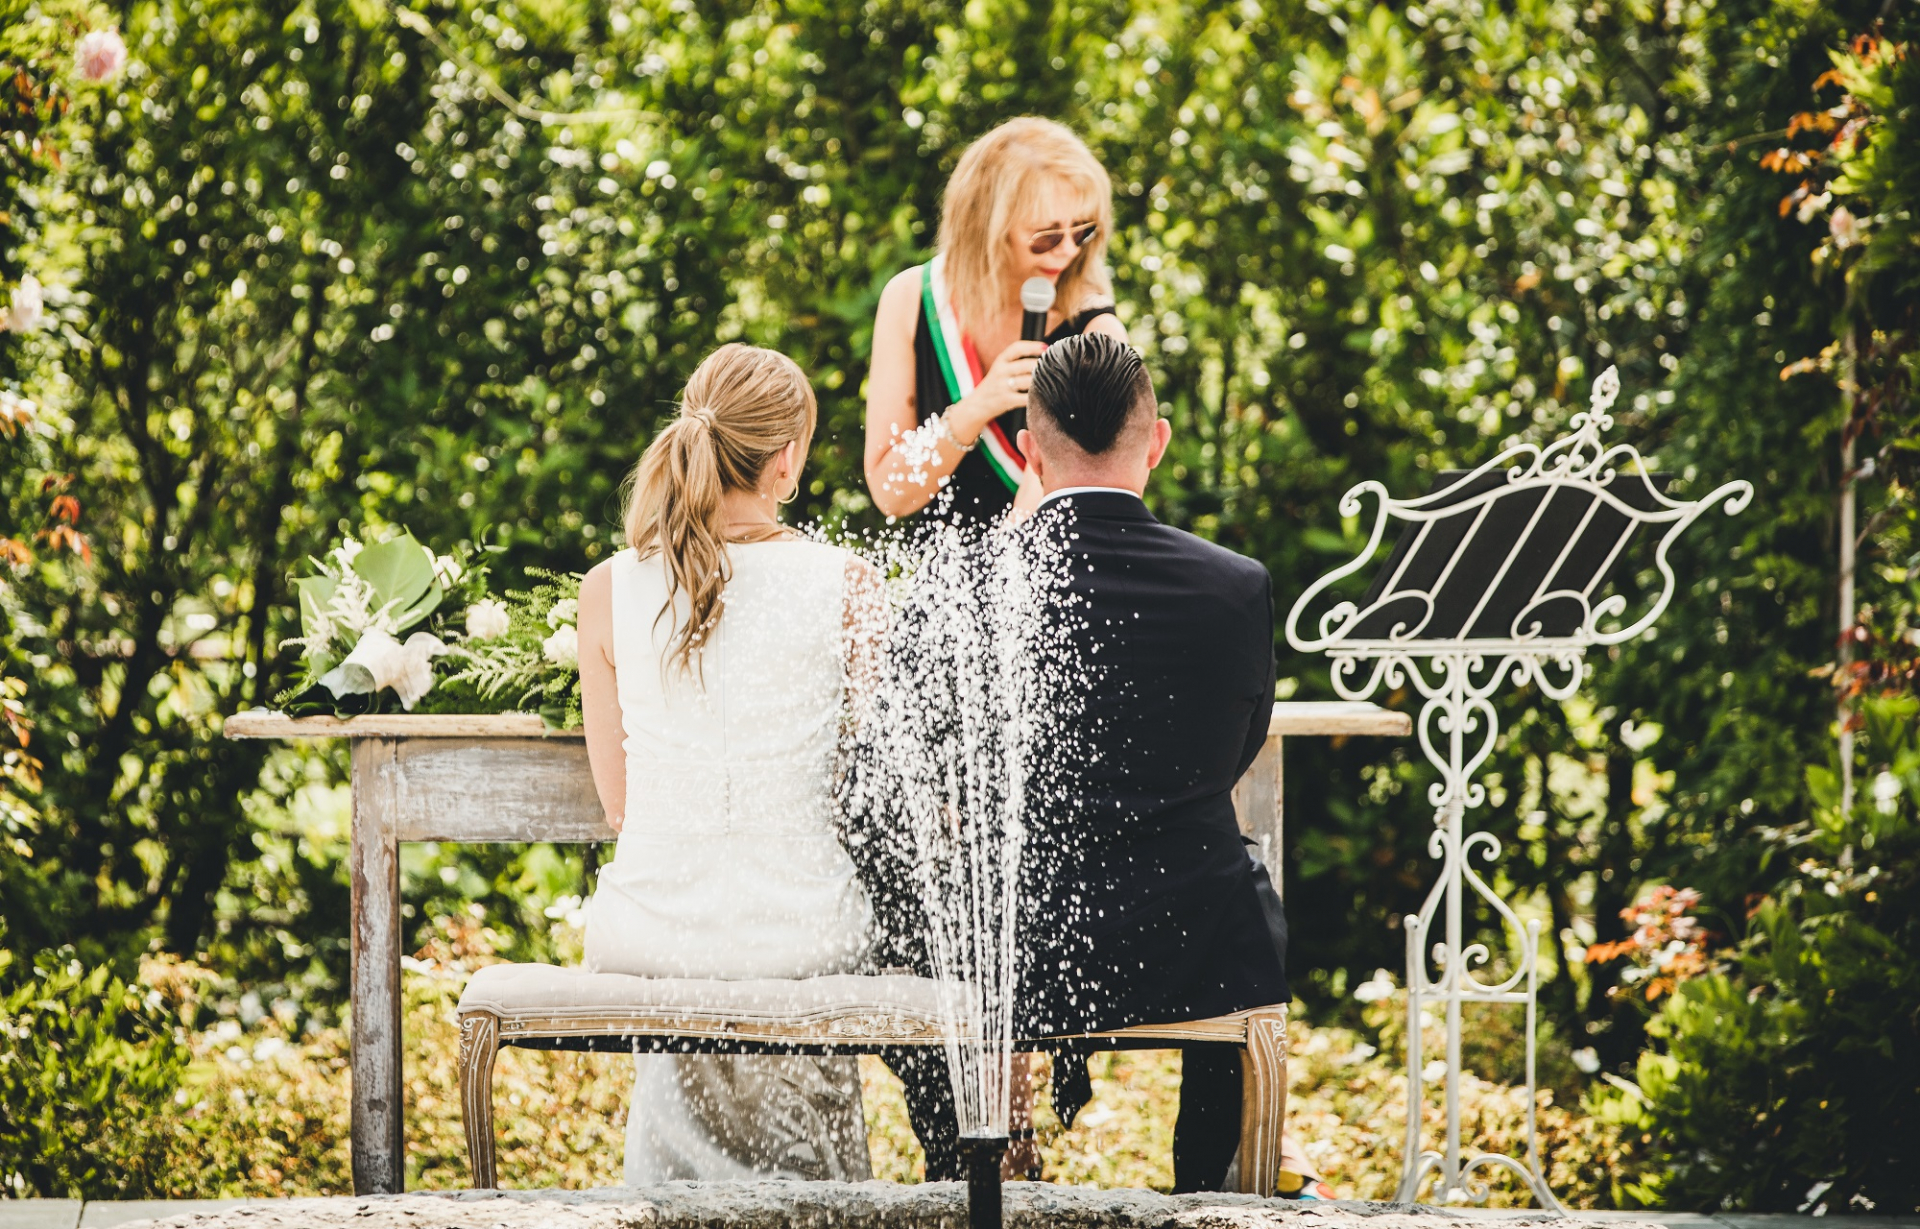 Trebaseleghe, Padua, Italy Outdoor Elopement Photography | During the civil ceremony, the bride and groom sit on a bench together